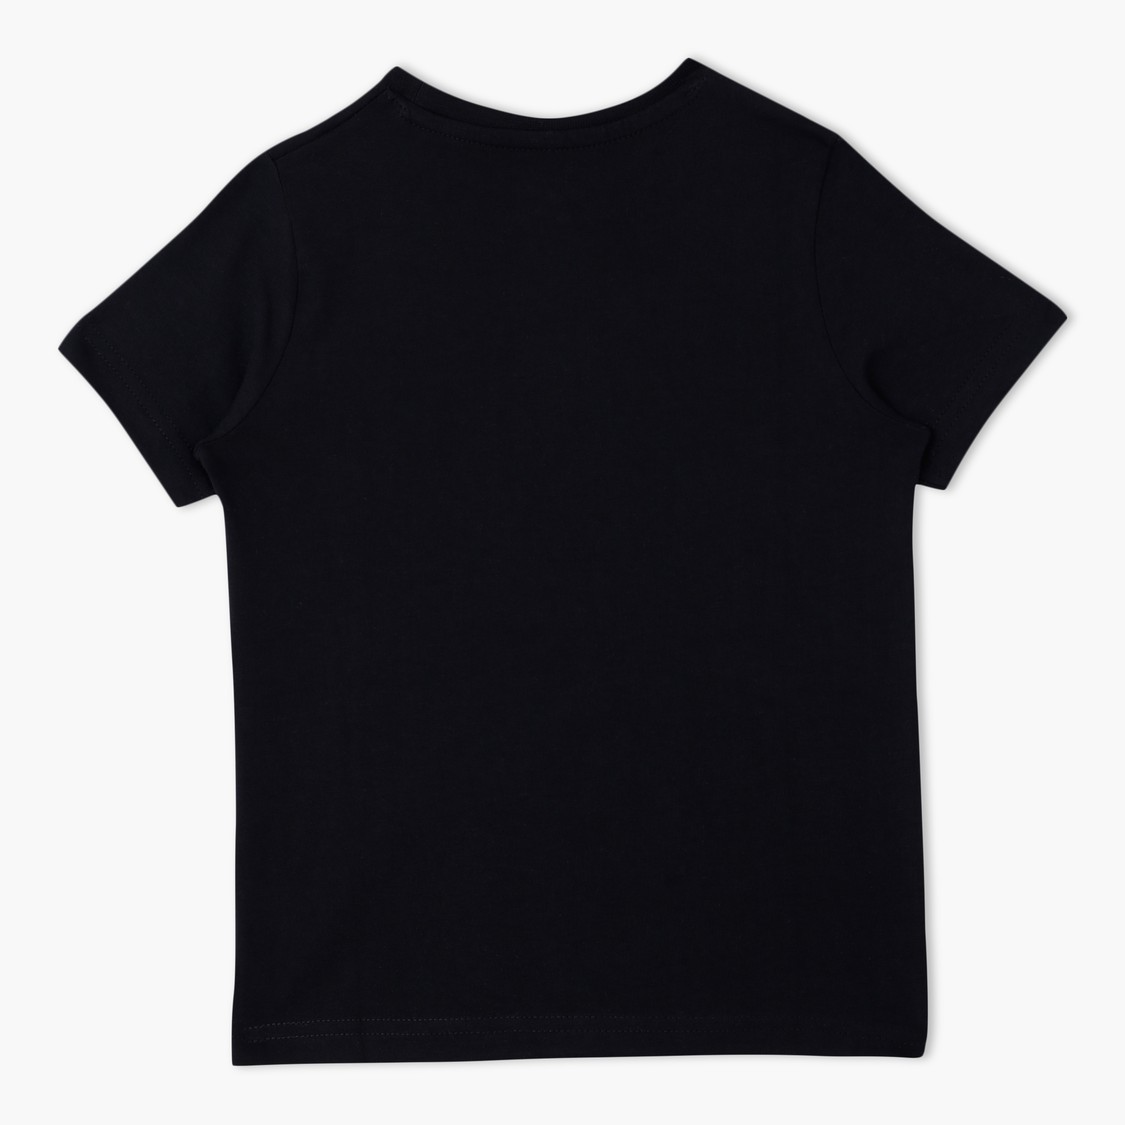 Short Sleeves Round Neck T-Shirt with Chest Pocket